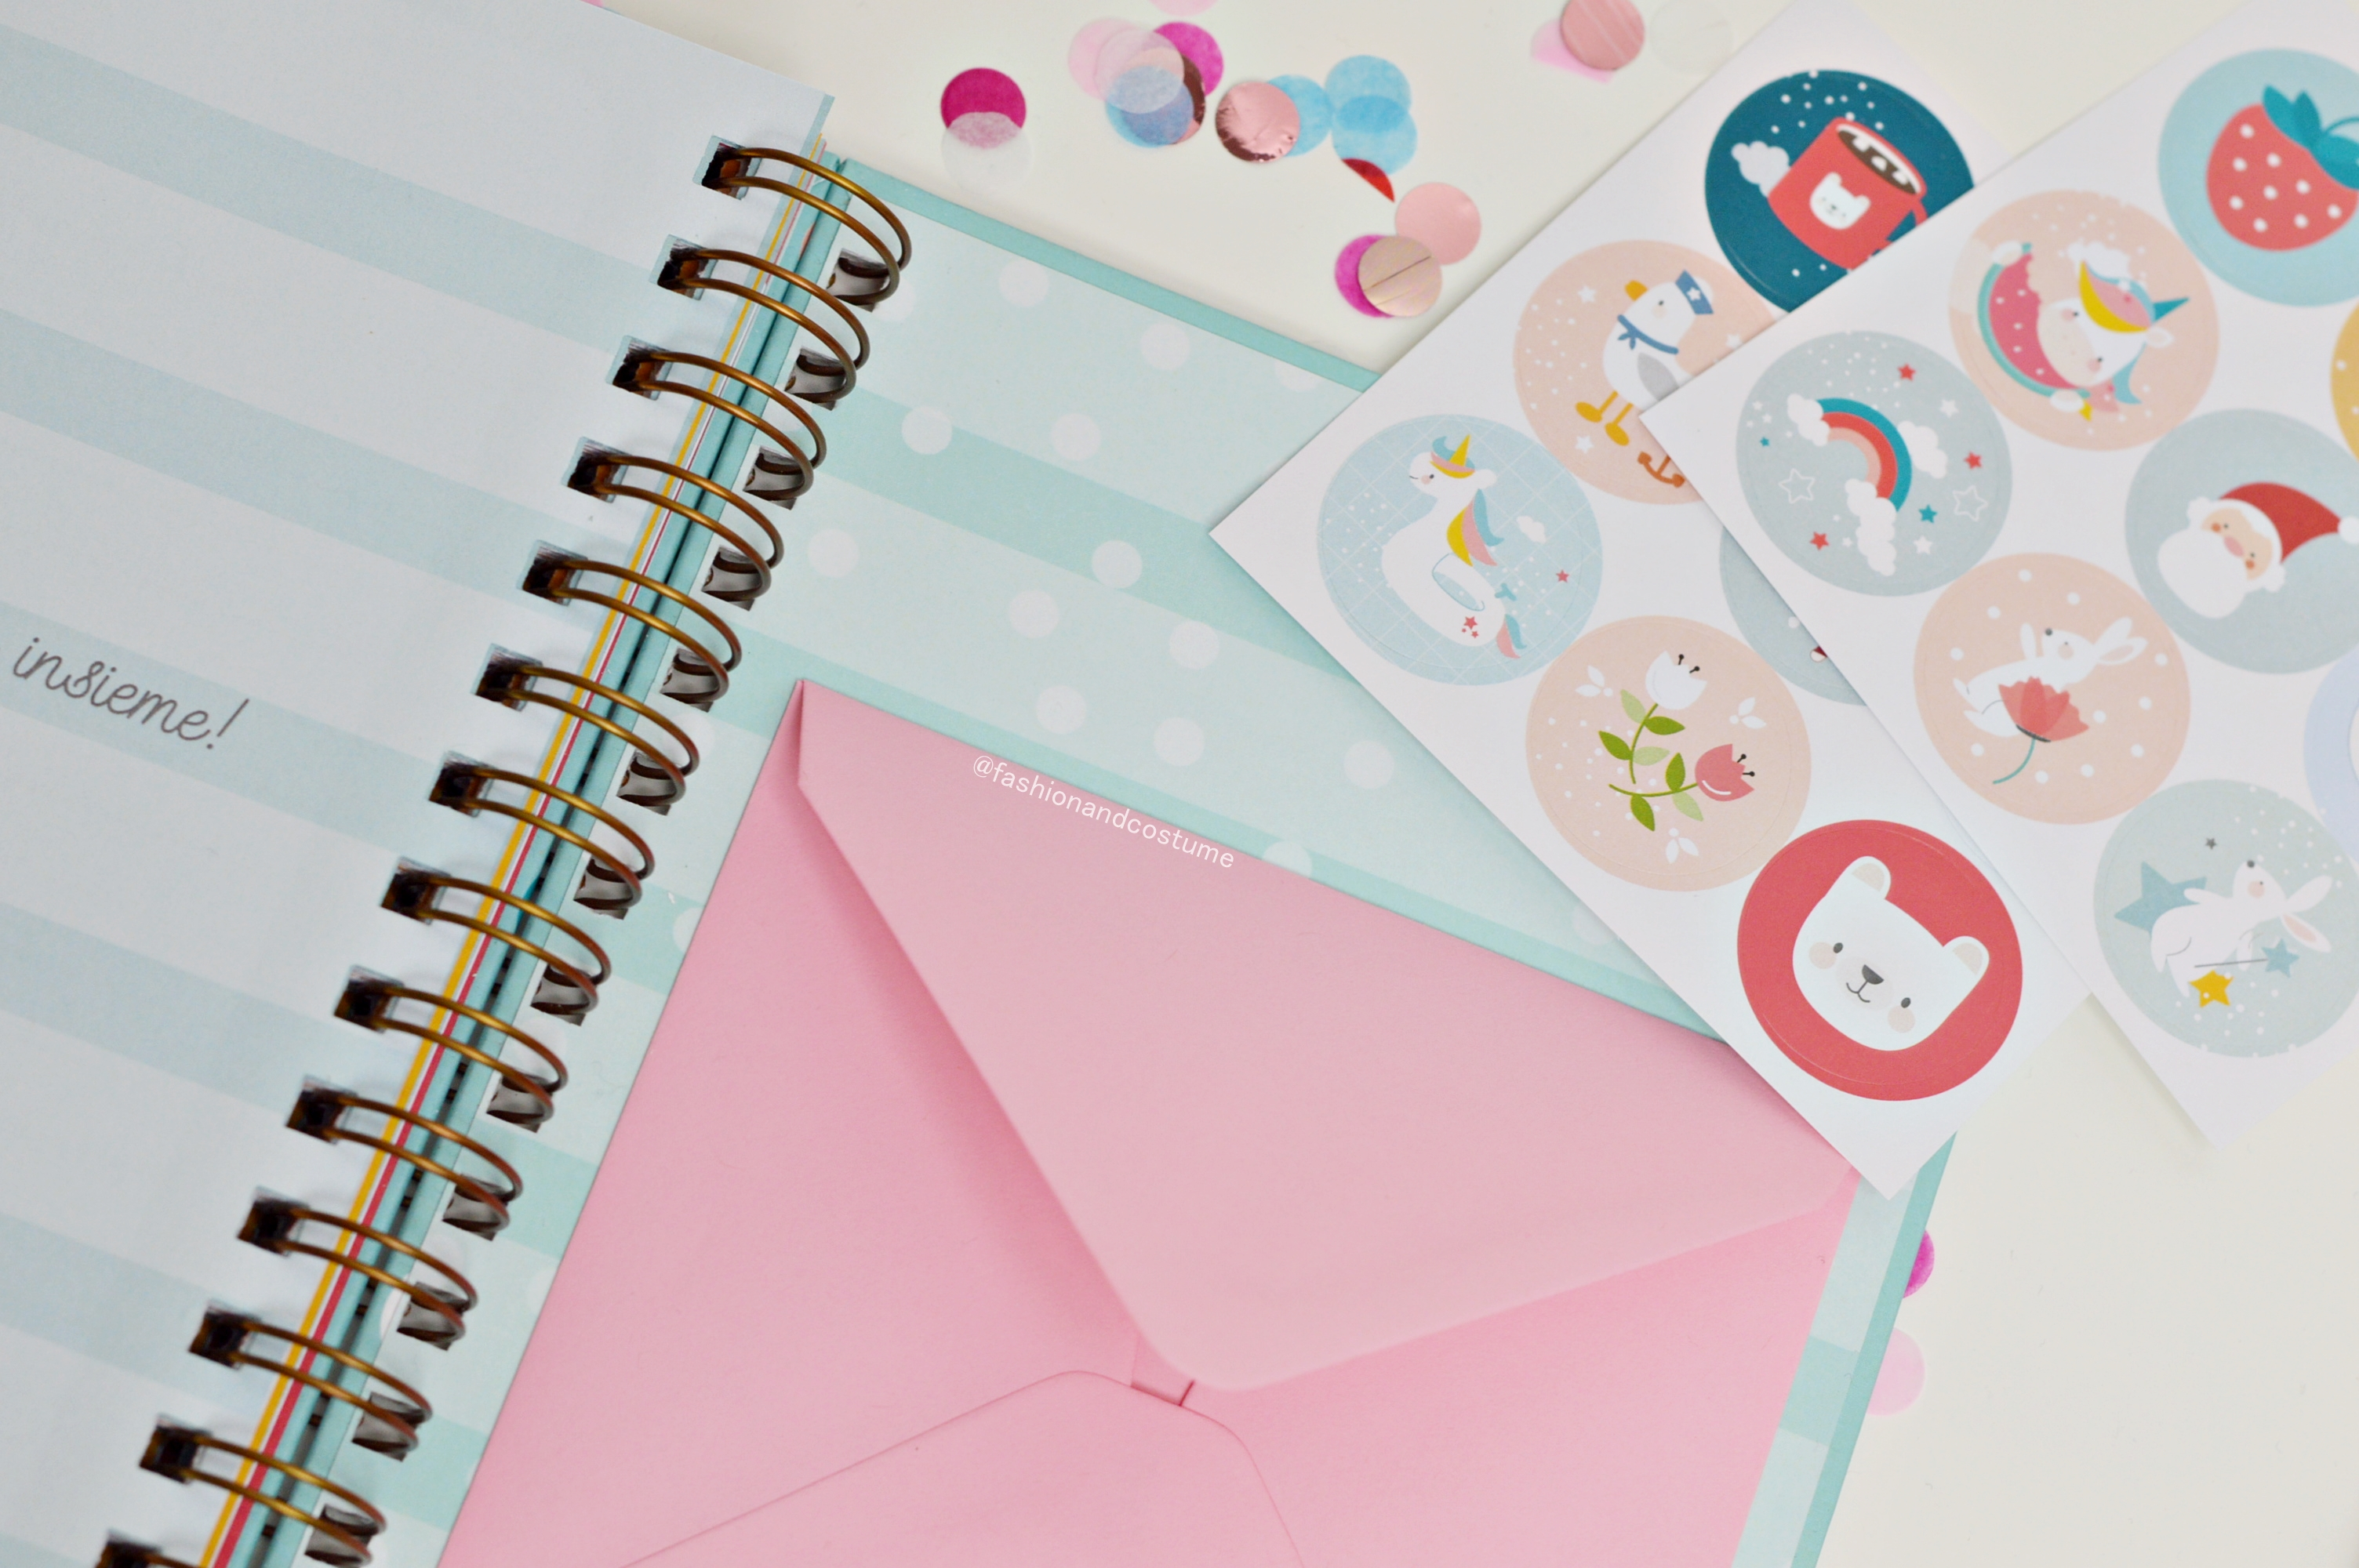 agenda-planner-2019-settimanale-weekly-giulia-lepetitrabbit-le-petit-rabbit-fashion-and-costume-fashionandcostume-graphic-designer-sticker-dove-acquistare